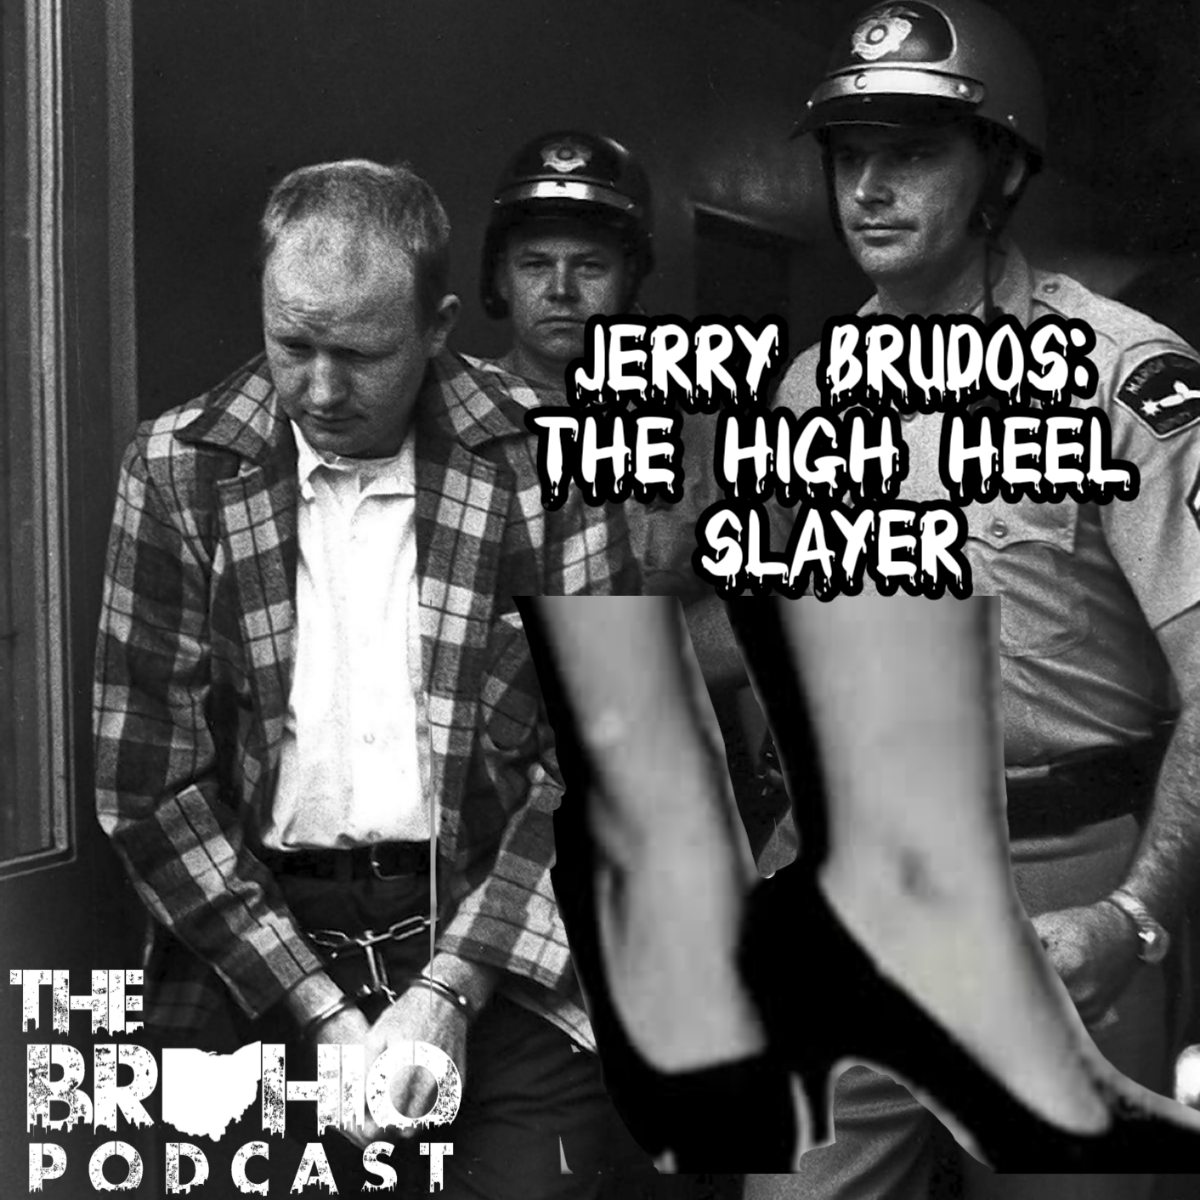 The High Heel Slayer: Jerome Brudos